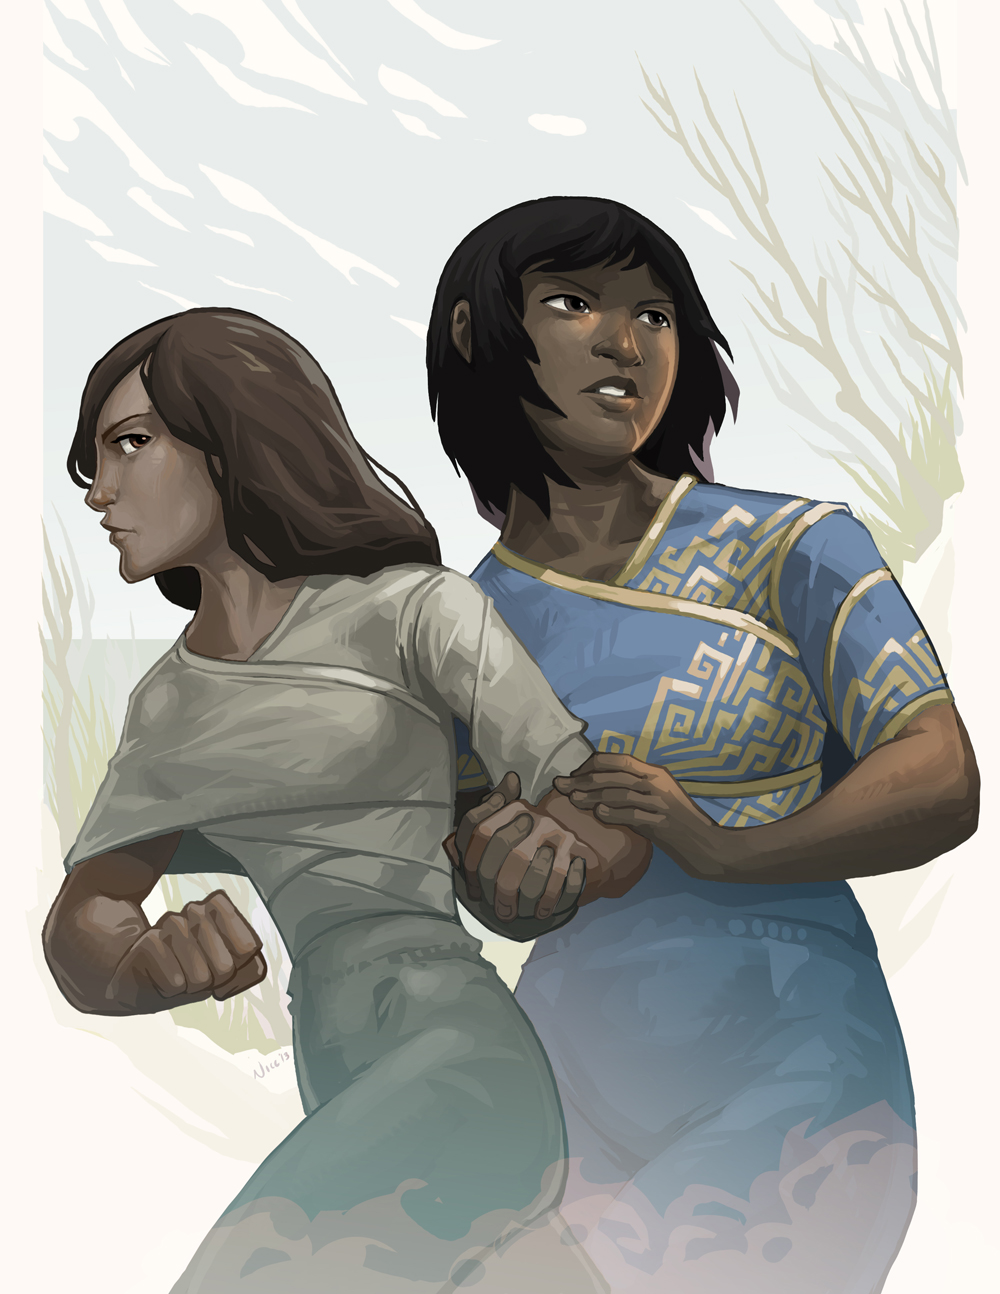 A digital drawing of two teenage girls – one determined, thin, with medium-dark skin and long hair, the other alert, full-figured, with dark skin and chin-length hair. The second girl is clutching the first girl's arm.